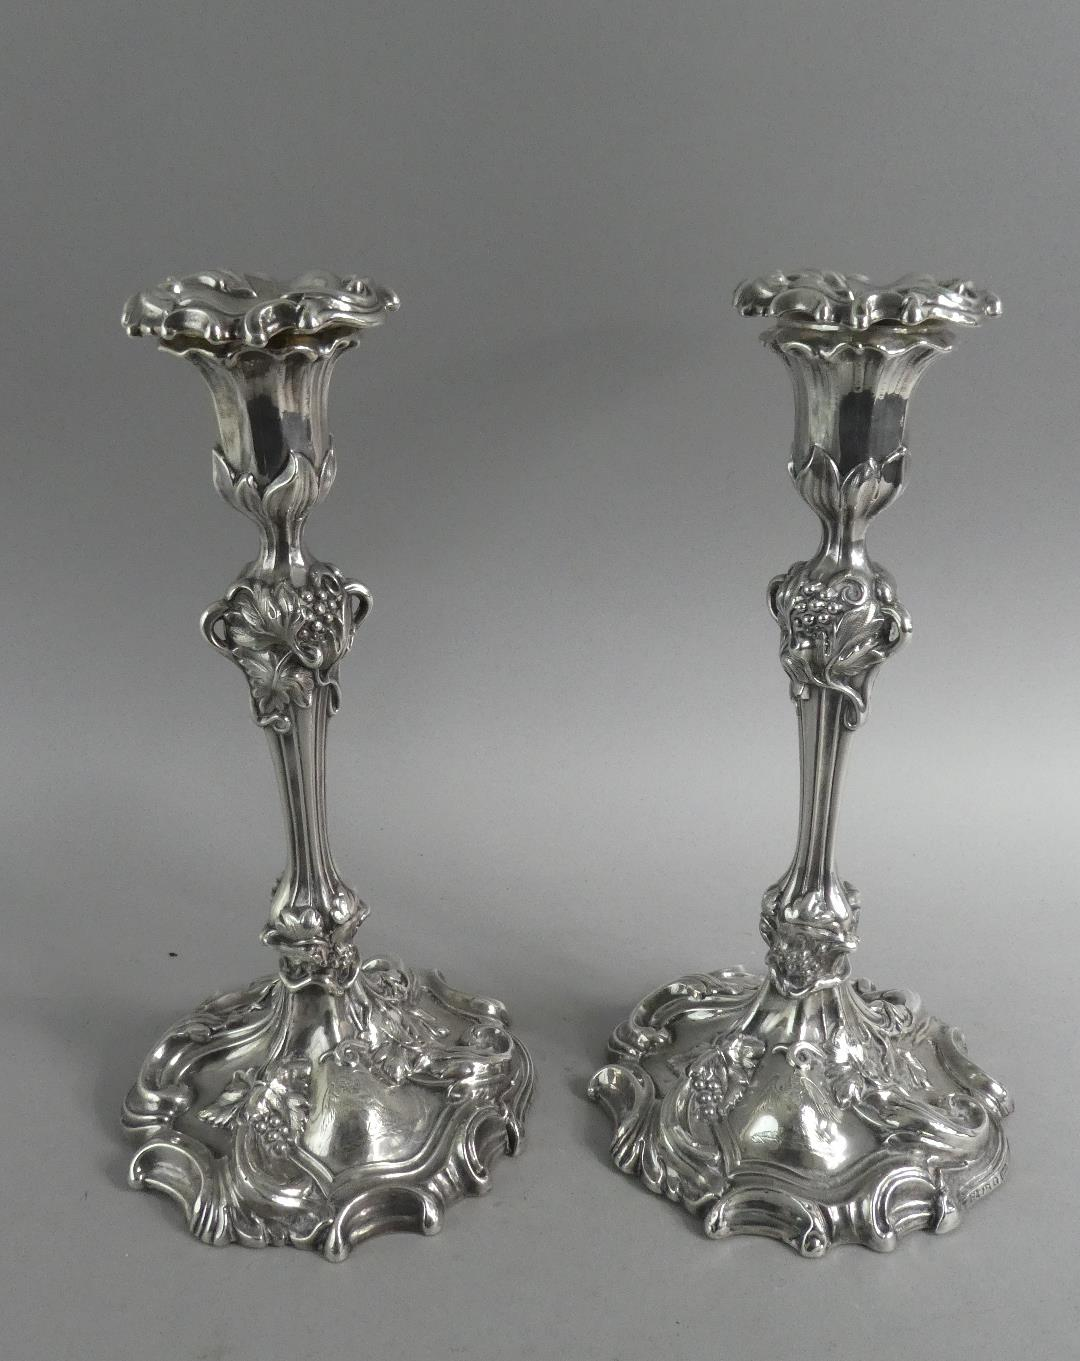 Lot 229 - A Pair of Victorian Silver Candlesticks by William Allanson of Sheffield. Chased Vine and Grape